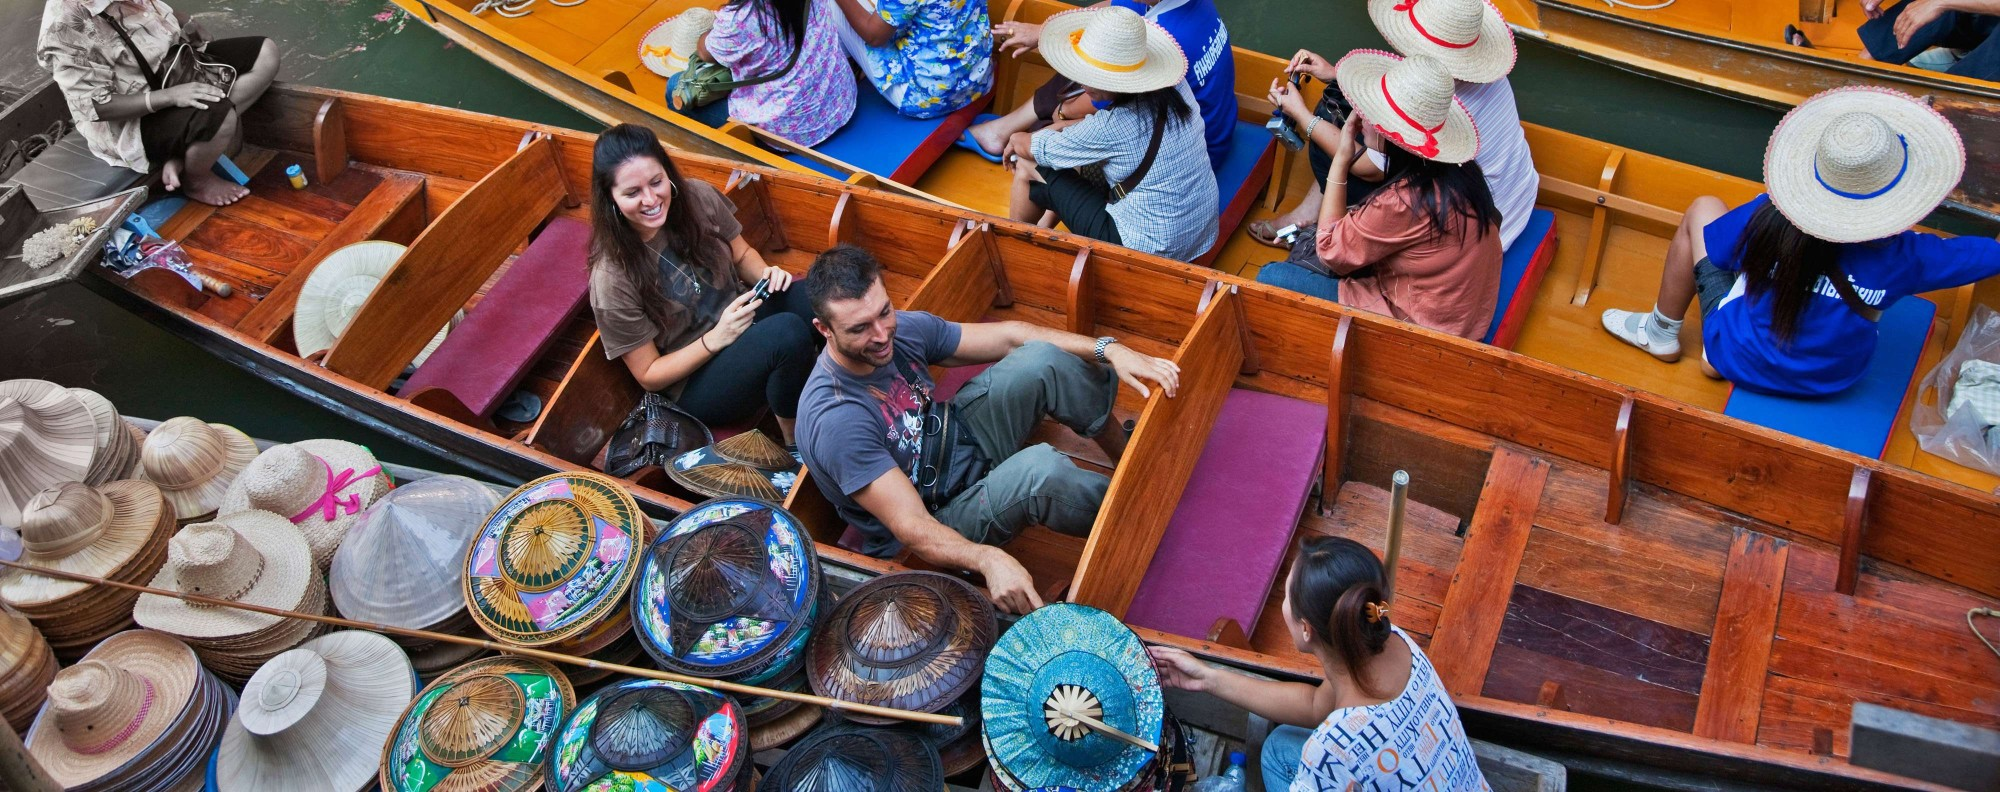 Visiting a floating market is a popular Bangkok pastime.